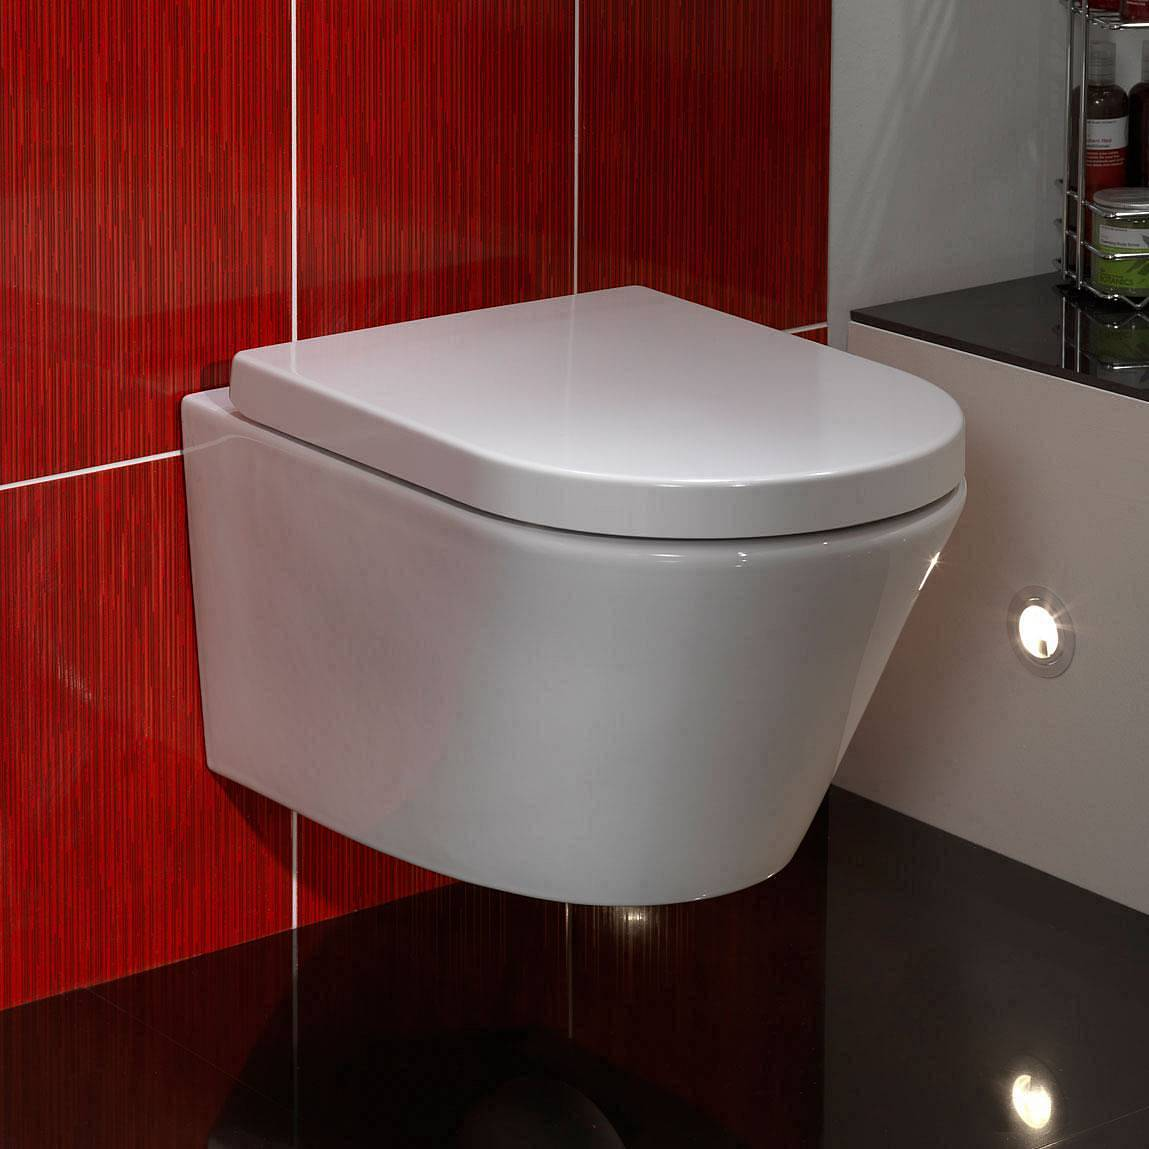 Best Wall Hung Toilet Design Of All Times Saniqua